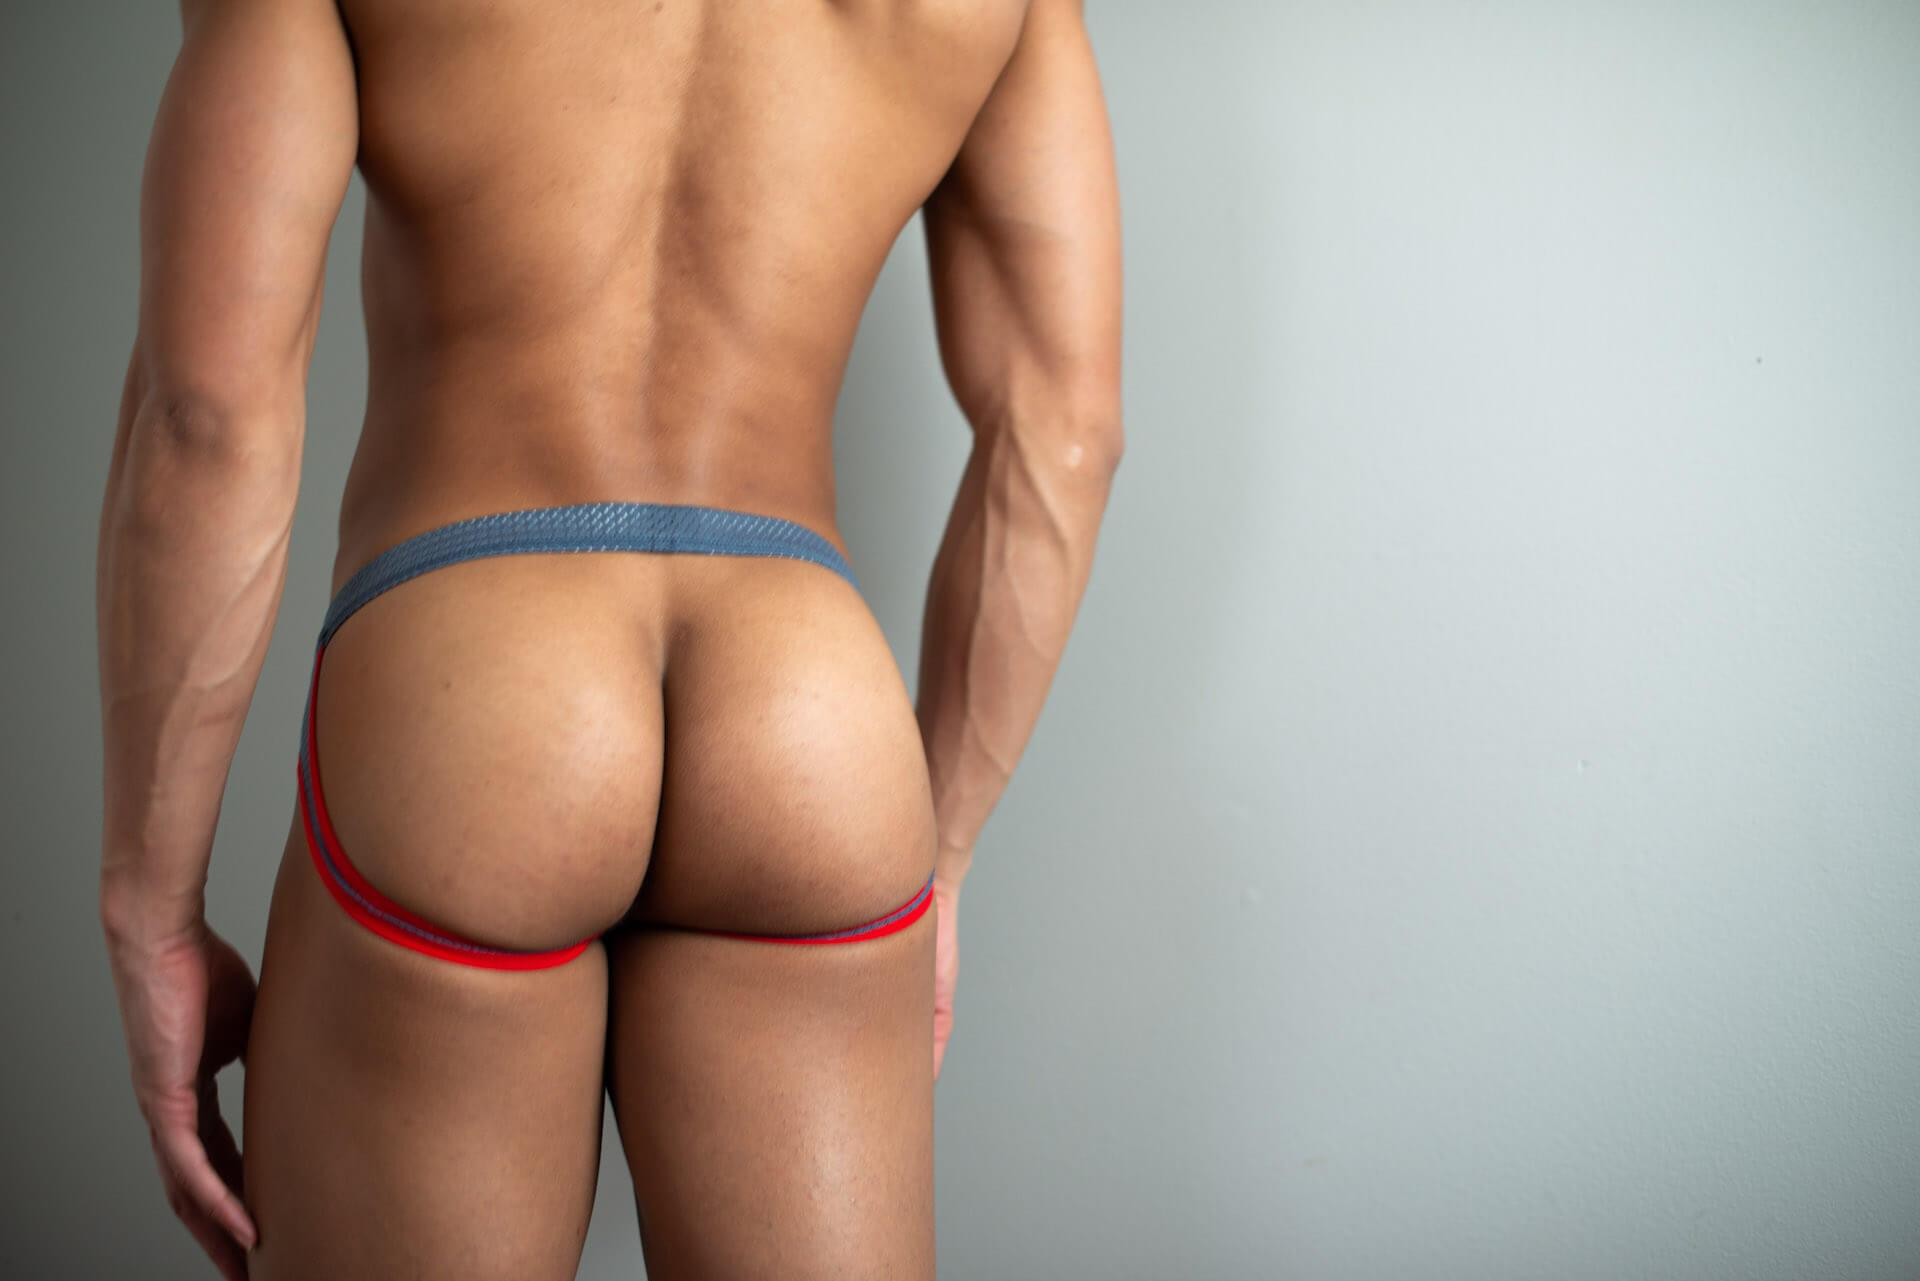 Why Wear Jockstraps? 5 Reasons You'll Want to Show Off